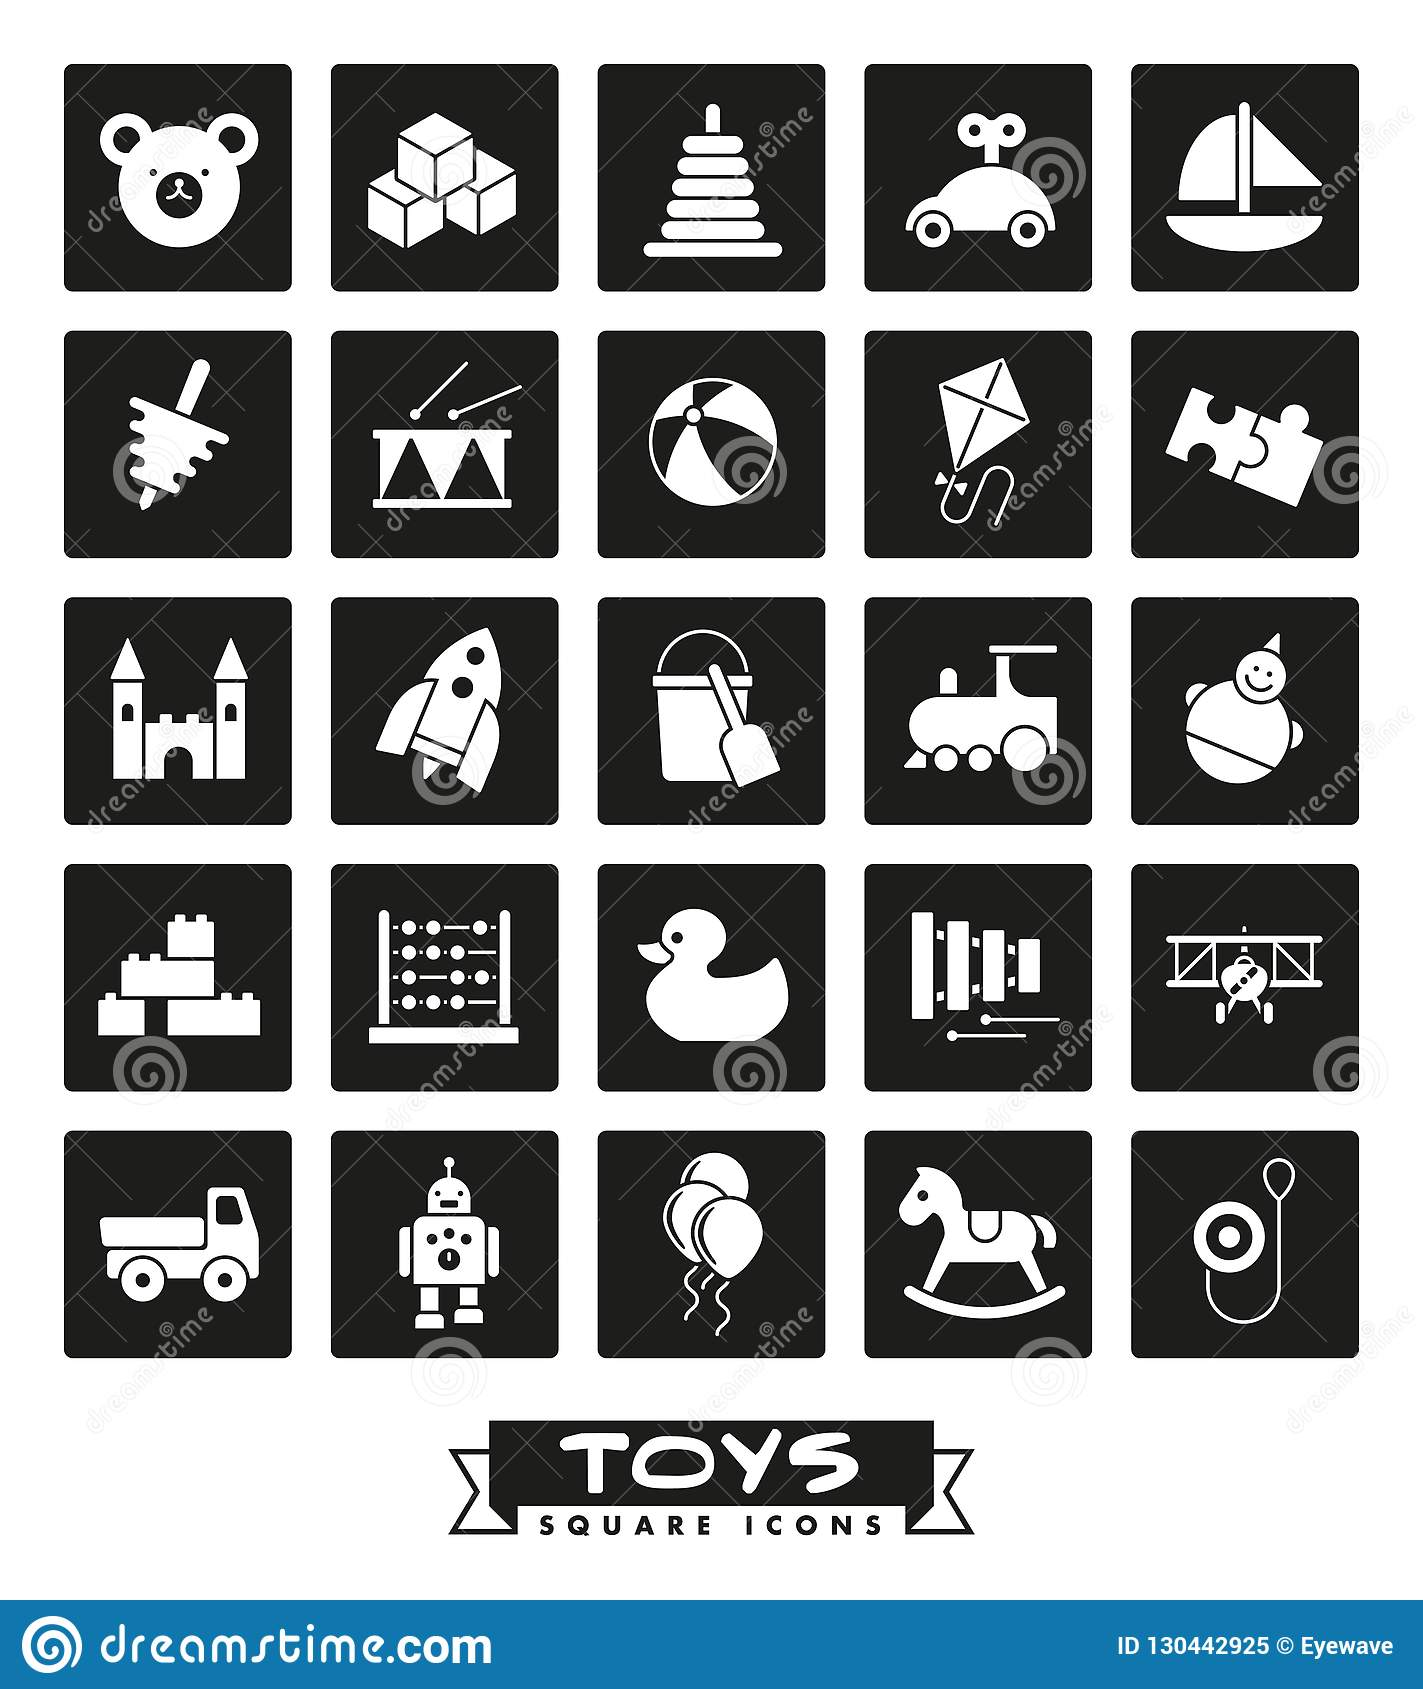 aeb766fafe Toys Square Glyph Icons Vector Set. Stock Vector - Illustration of ...